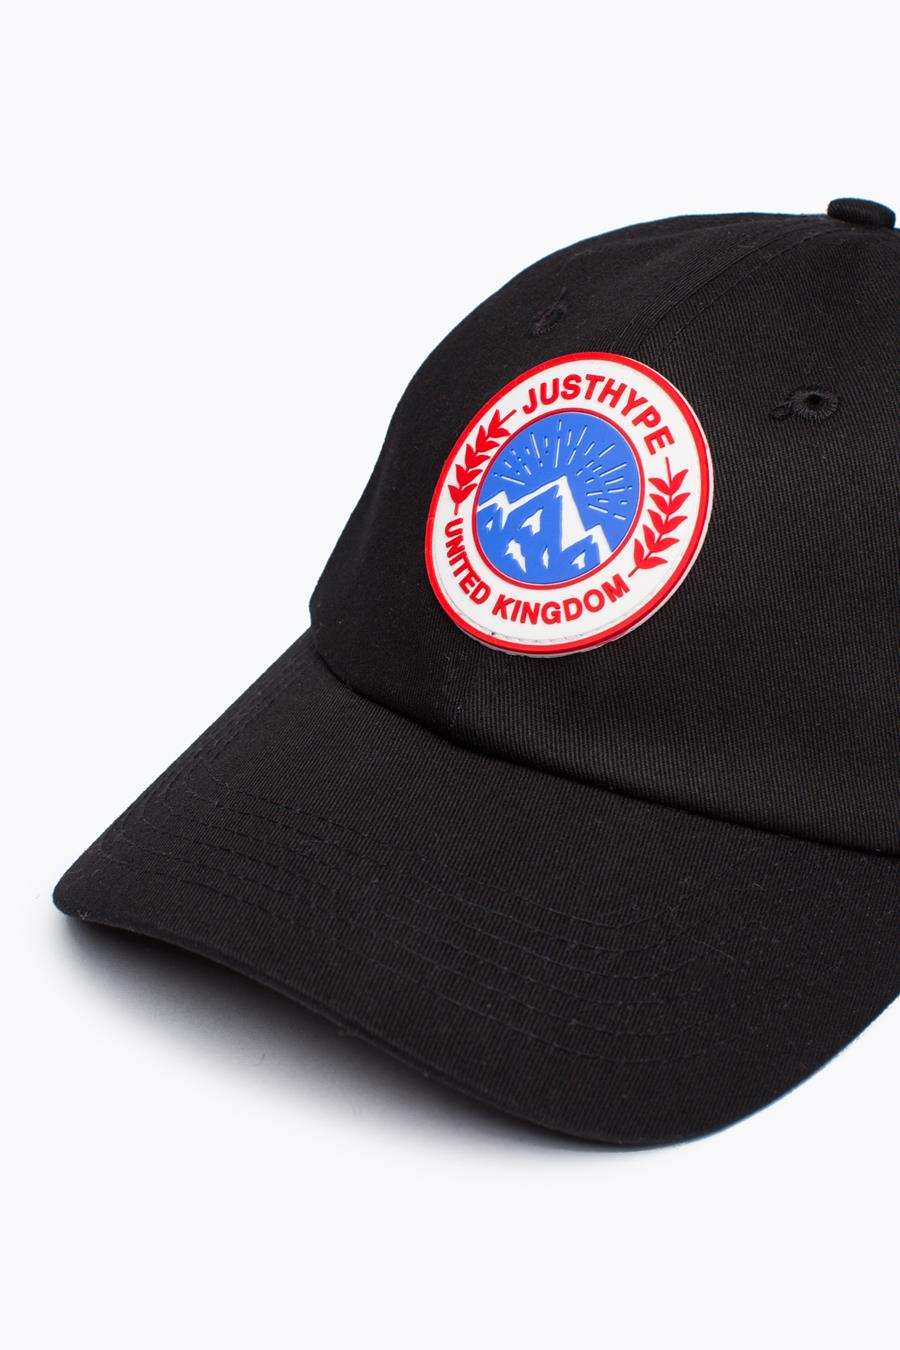 dd282dcd HYPE BLACK MOUNTAINEERING DAD HAT – JustHype ltd